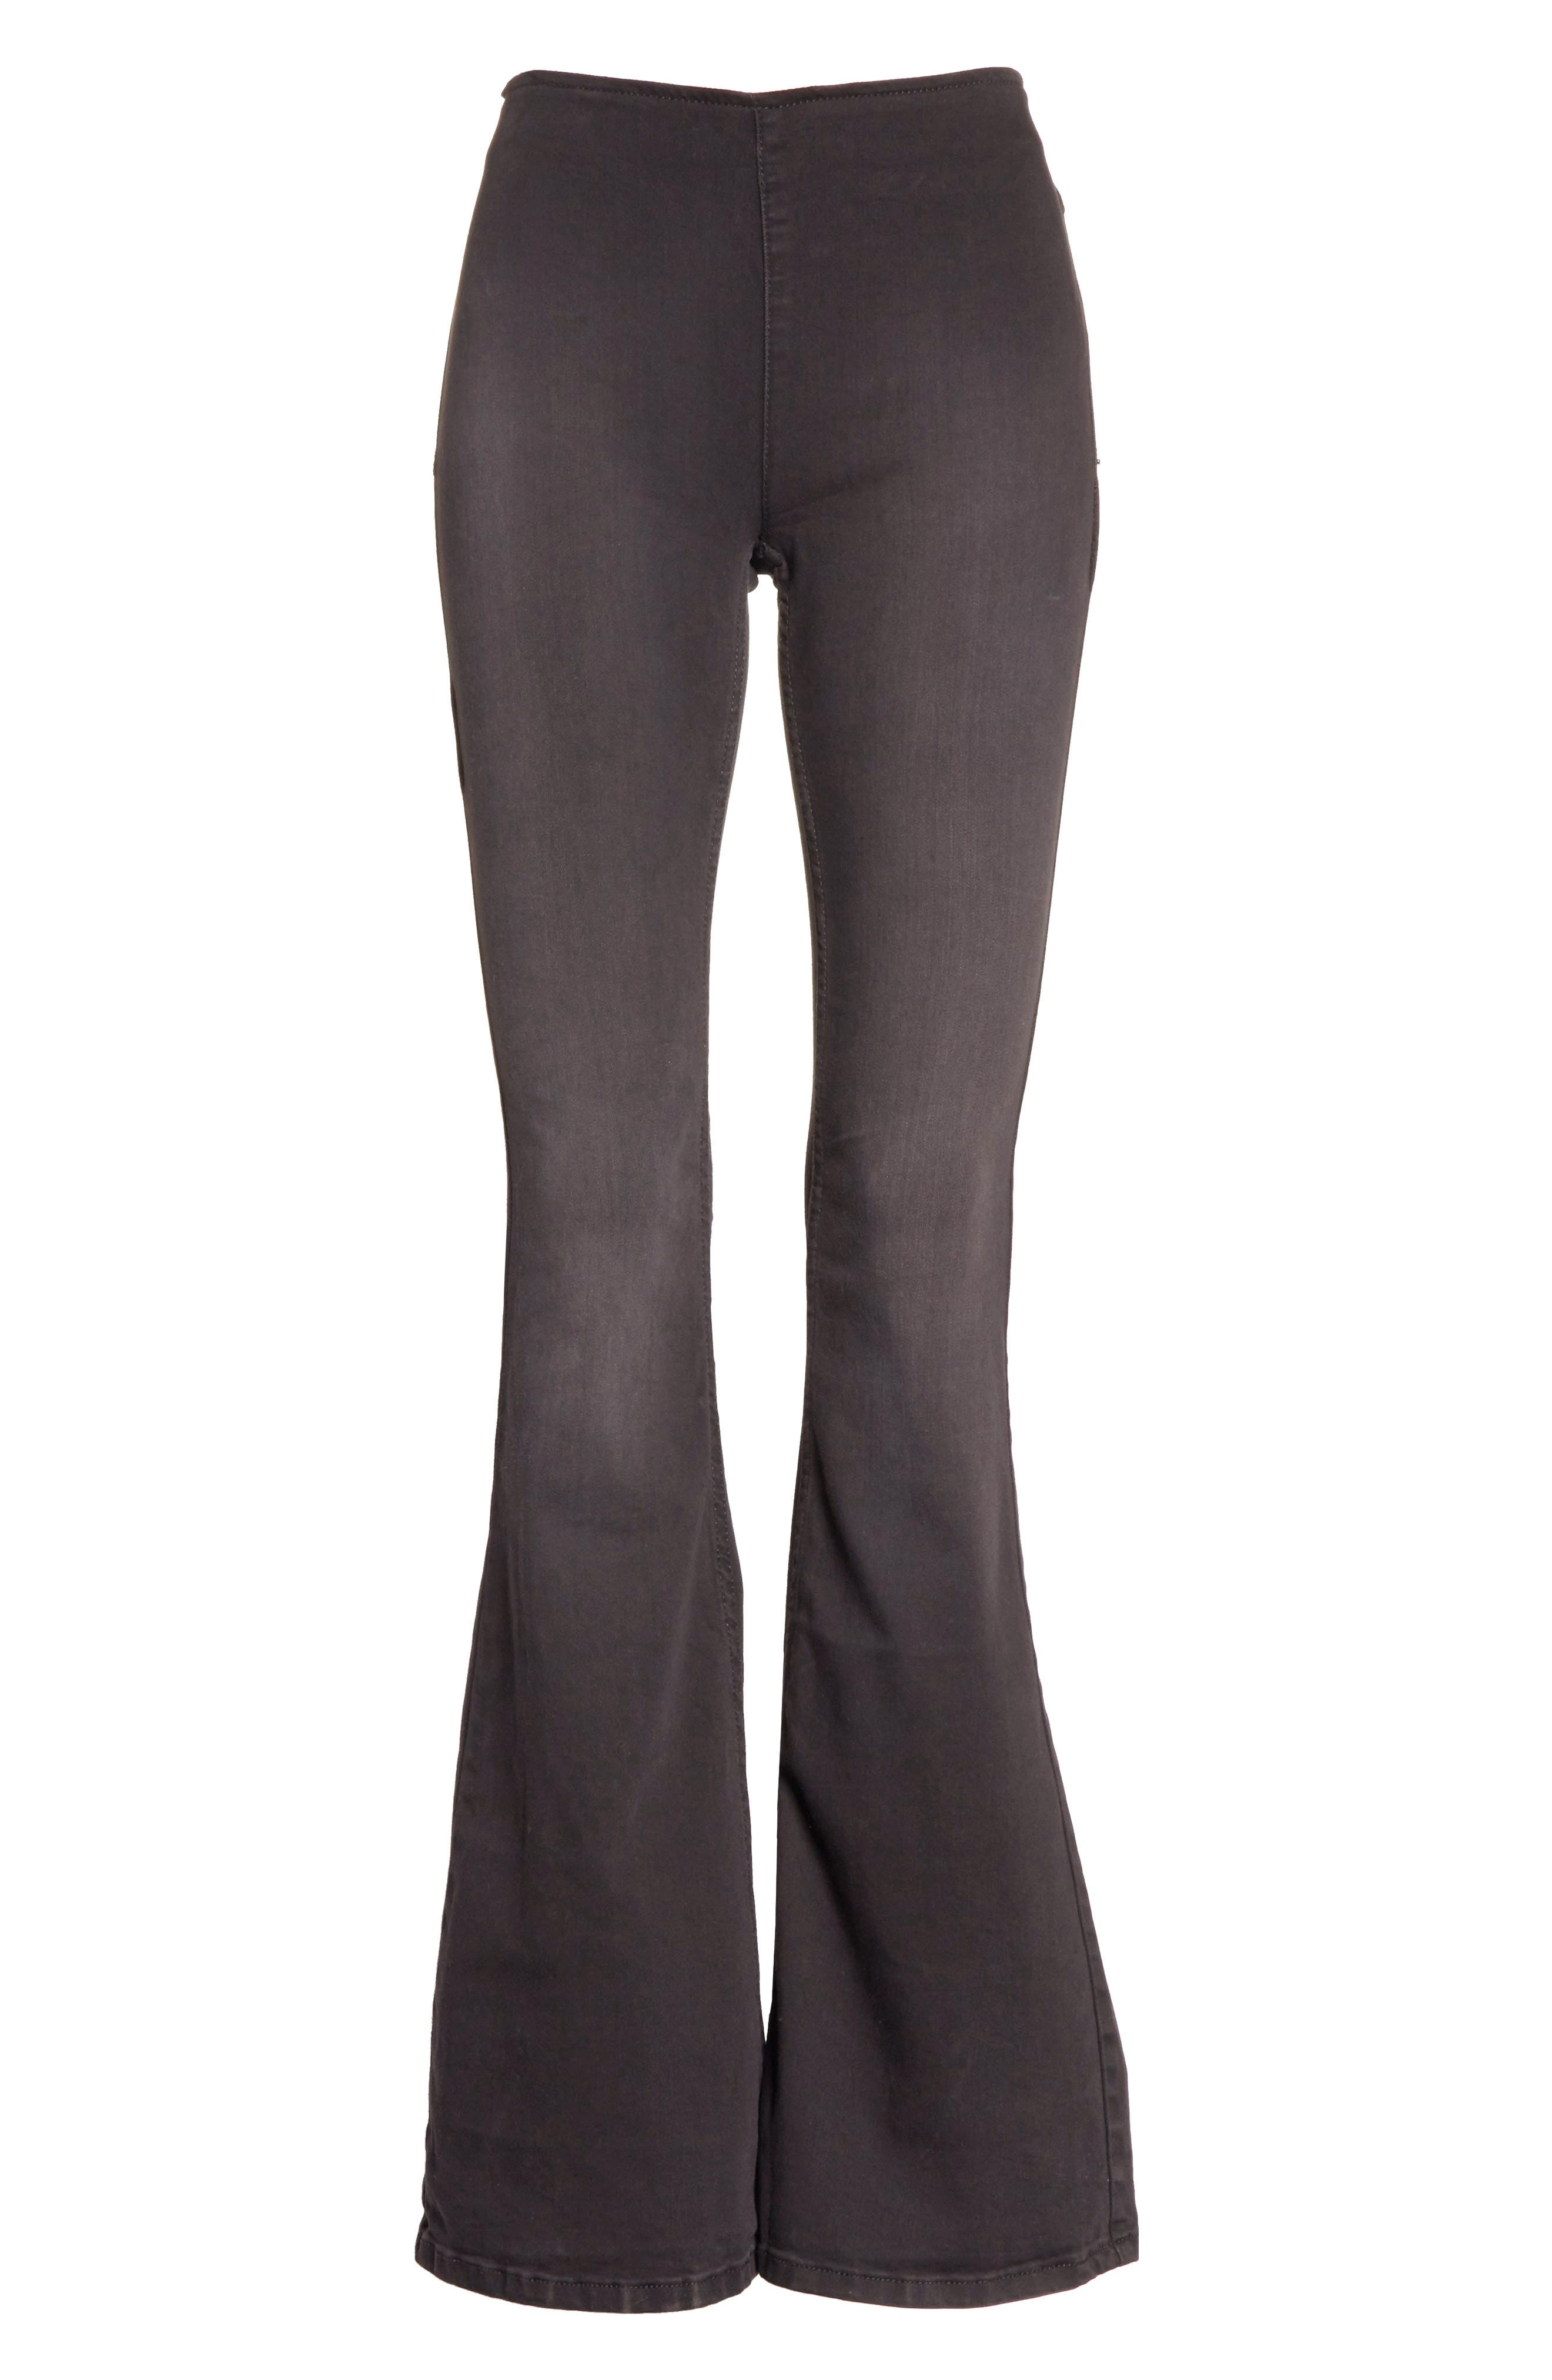 We the Free by Free People Gummy Pull-On Flare Leg Jeans,                             Alternate thumbnail 7, color,                             BLACK